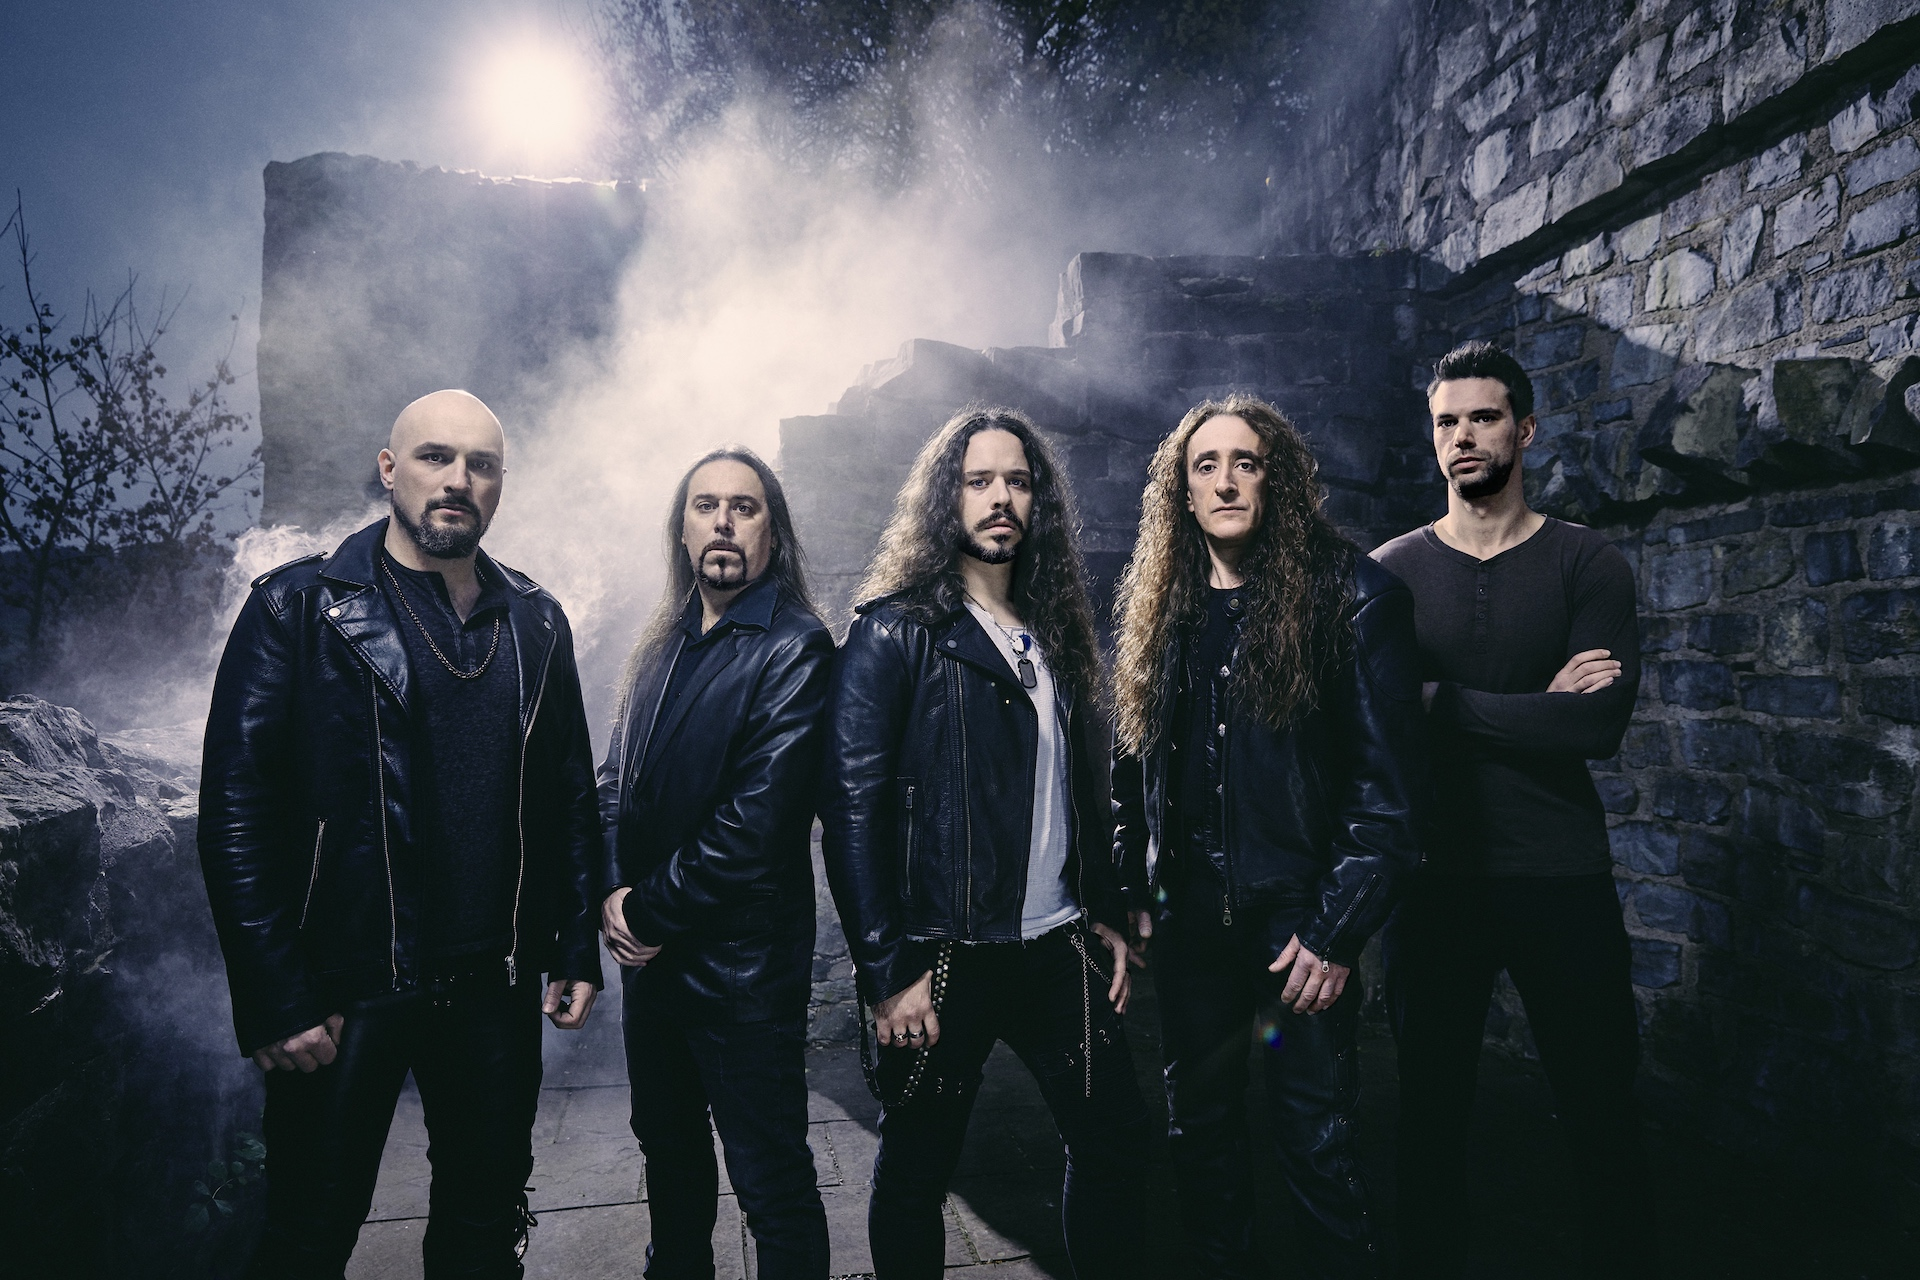 Rhapsody Of Fire - Release of the new album